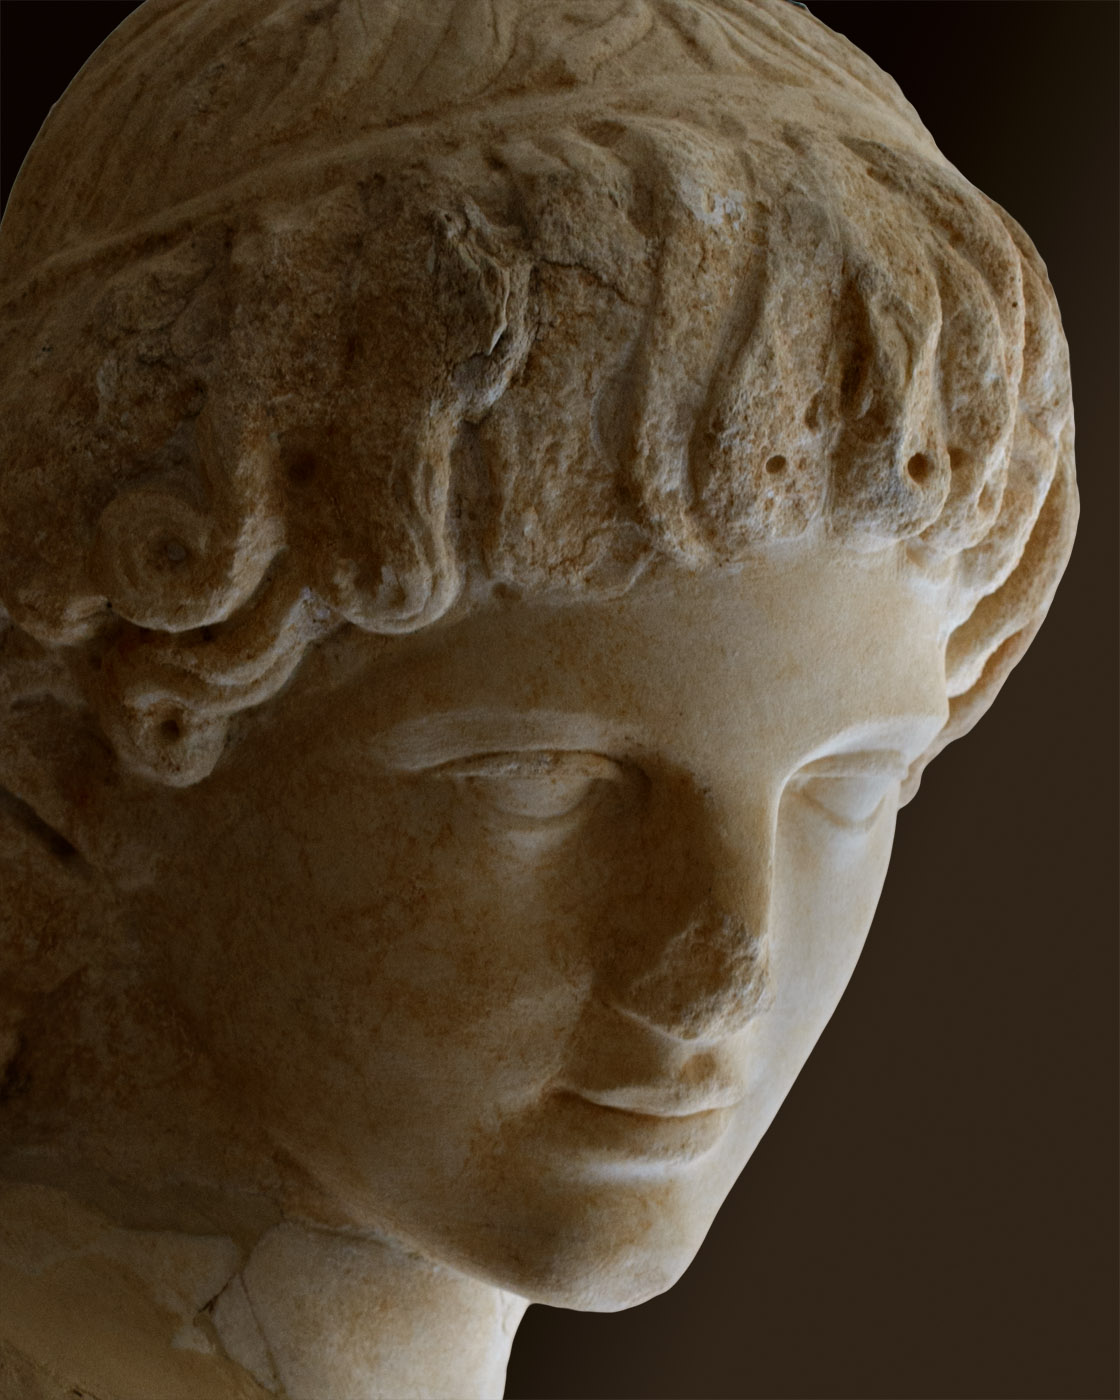 Head of youth (close-up). Fine-grained white marble. 1st—2nd century CE. Inv. No. S 1539. Corinth, Archaeological Museum of Ancient Corinth